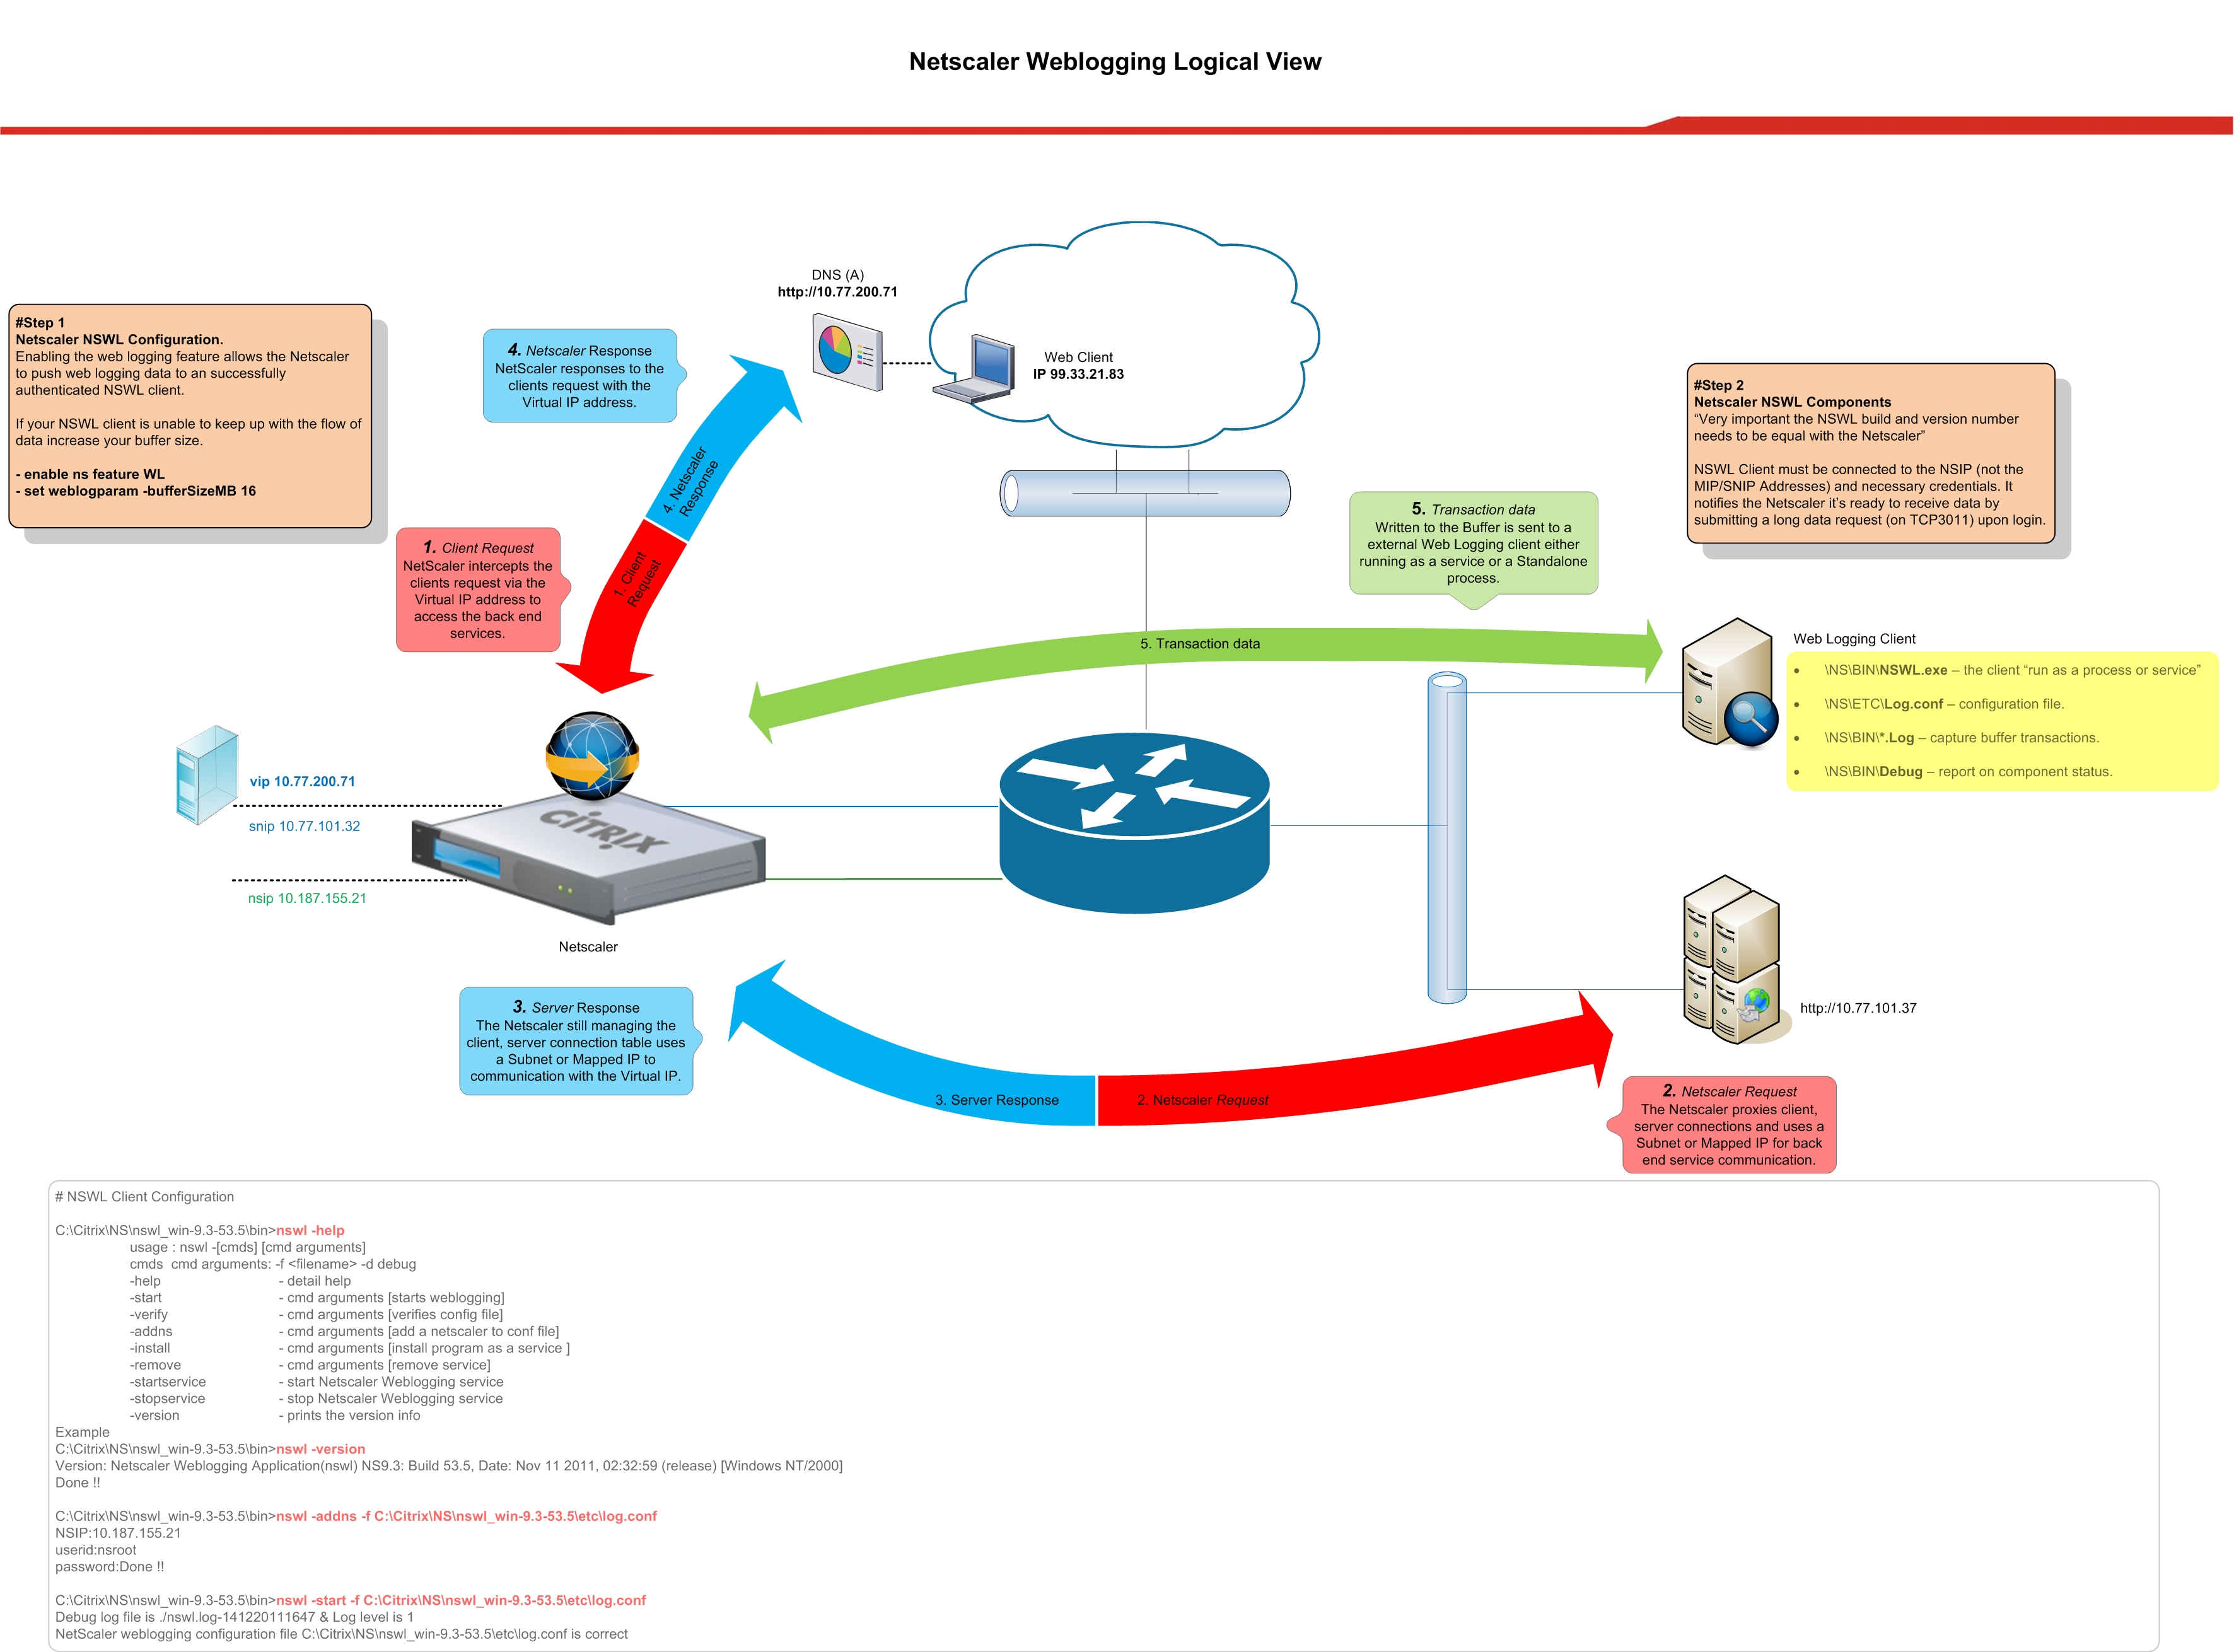 citrix netscaler diagram cell cycle blank worksheet weblogging overview vmhq advertisements